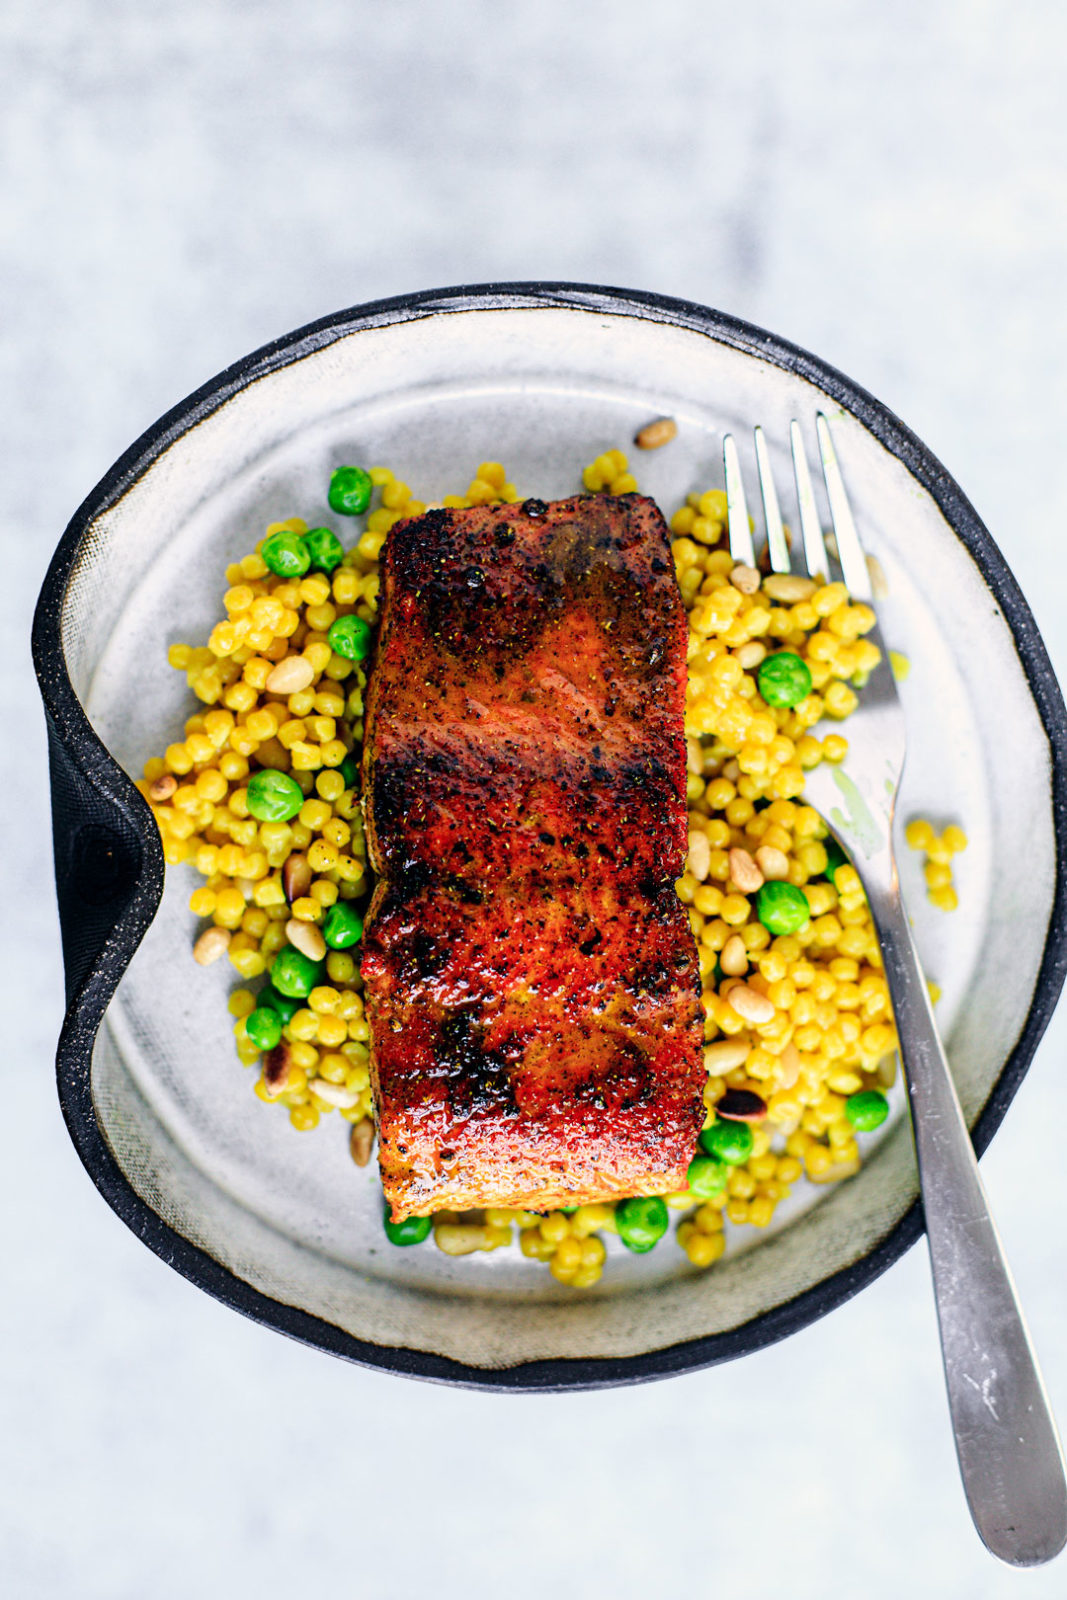 Pan-seared salmon over bed of couscous and peas.